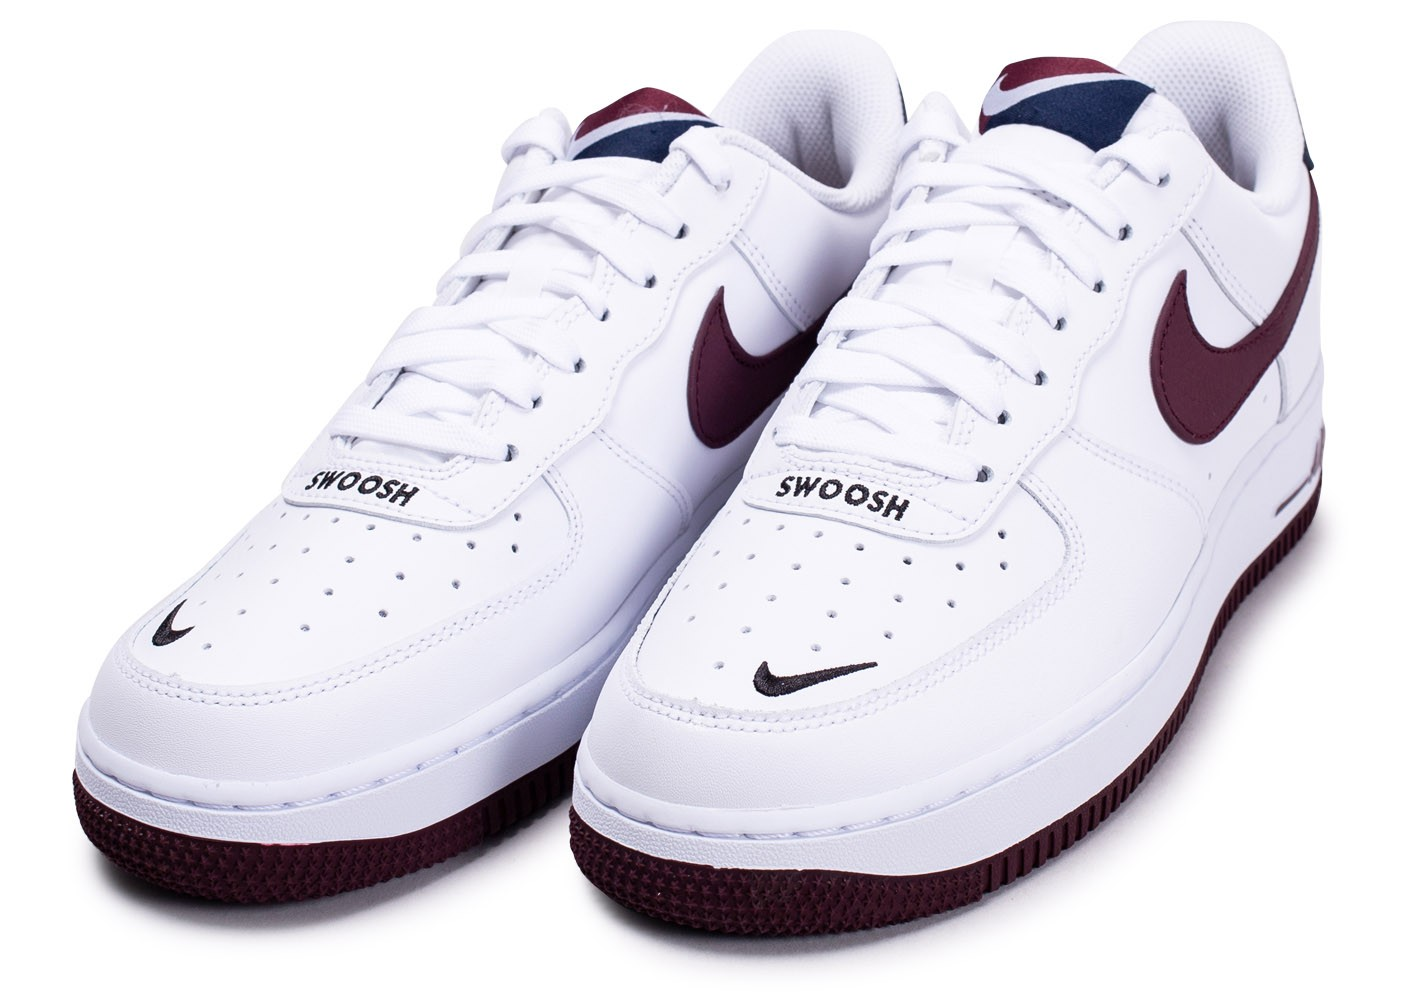 Nike Air Force 1'07 blanc marron bleu Chaussures Baskets